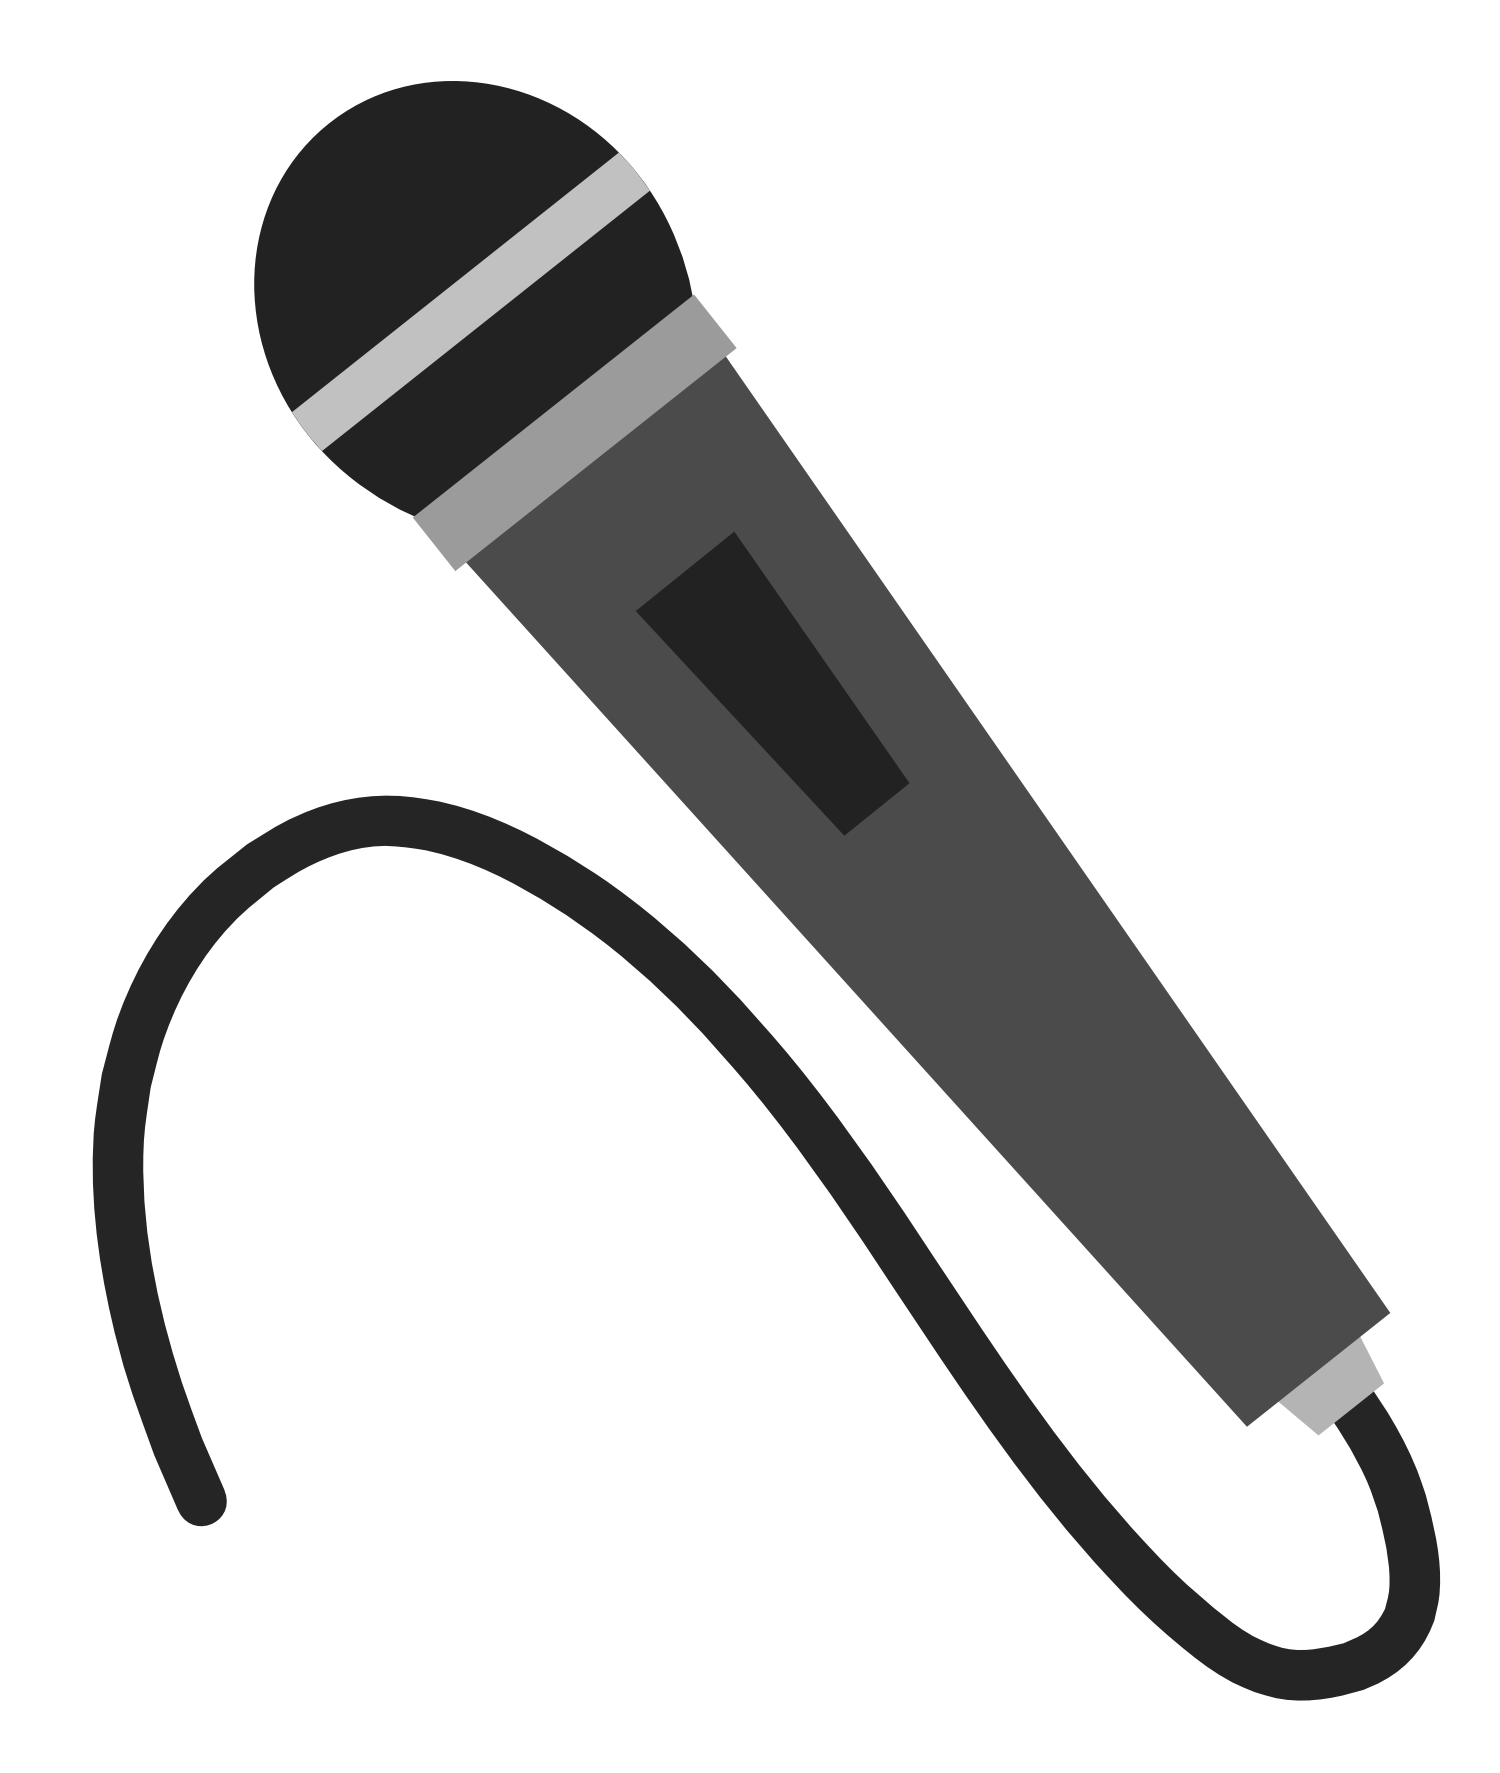 silhouette clipart microphone